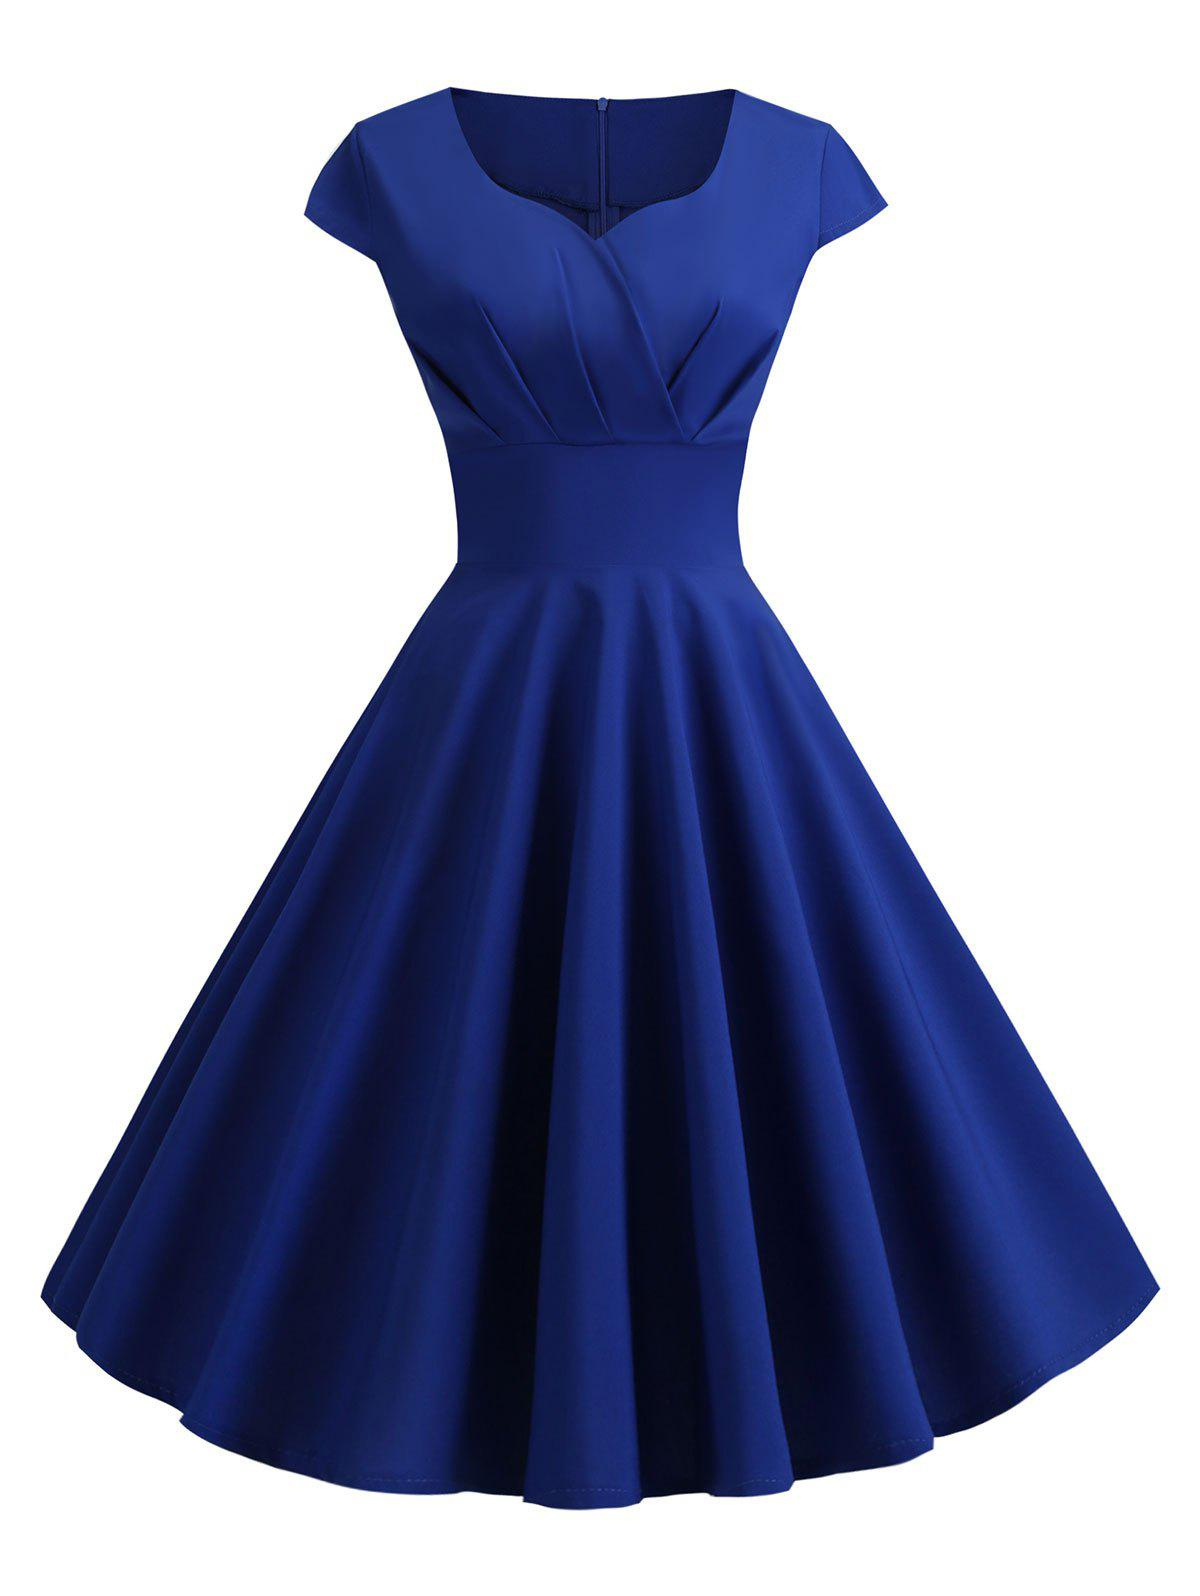 Sweetheart Neck Vintage Rockabilly Style Fit and Flare Dress - COBALT BLUE M